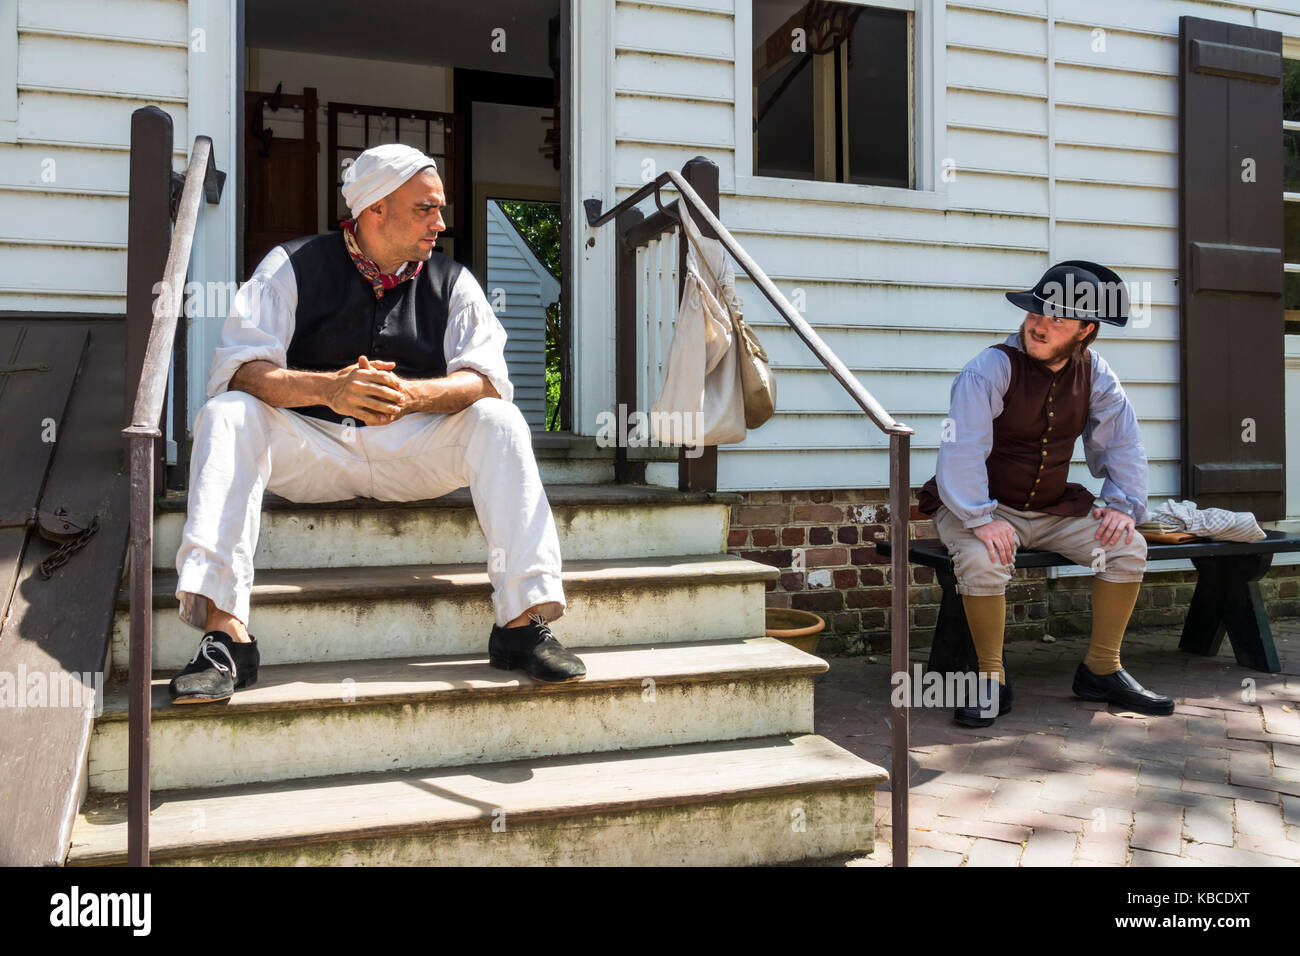 18th Century Man Stock Photos & 18th Century Man Stock